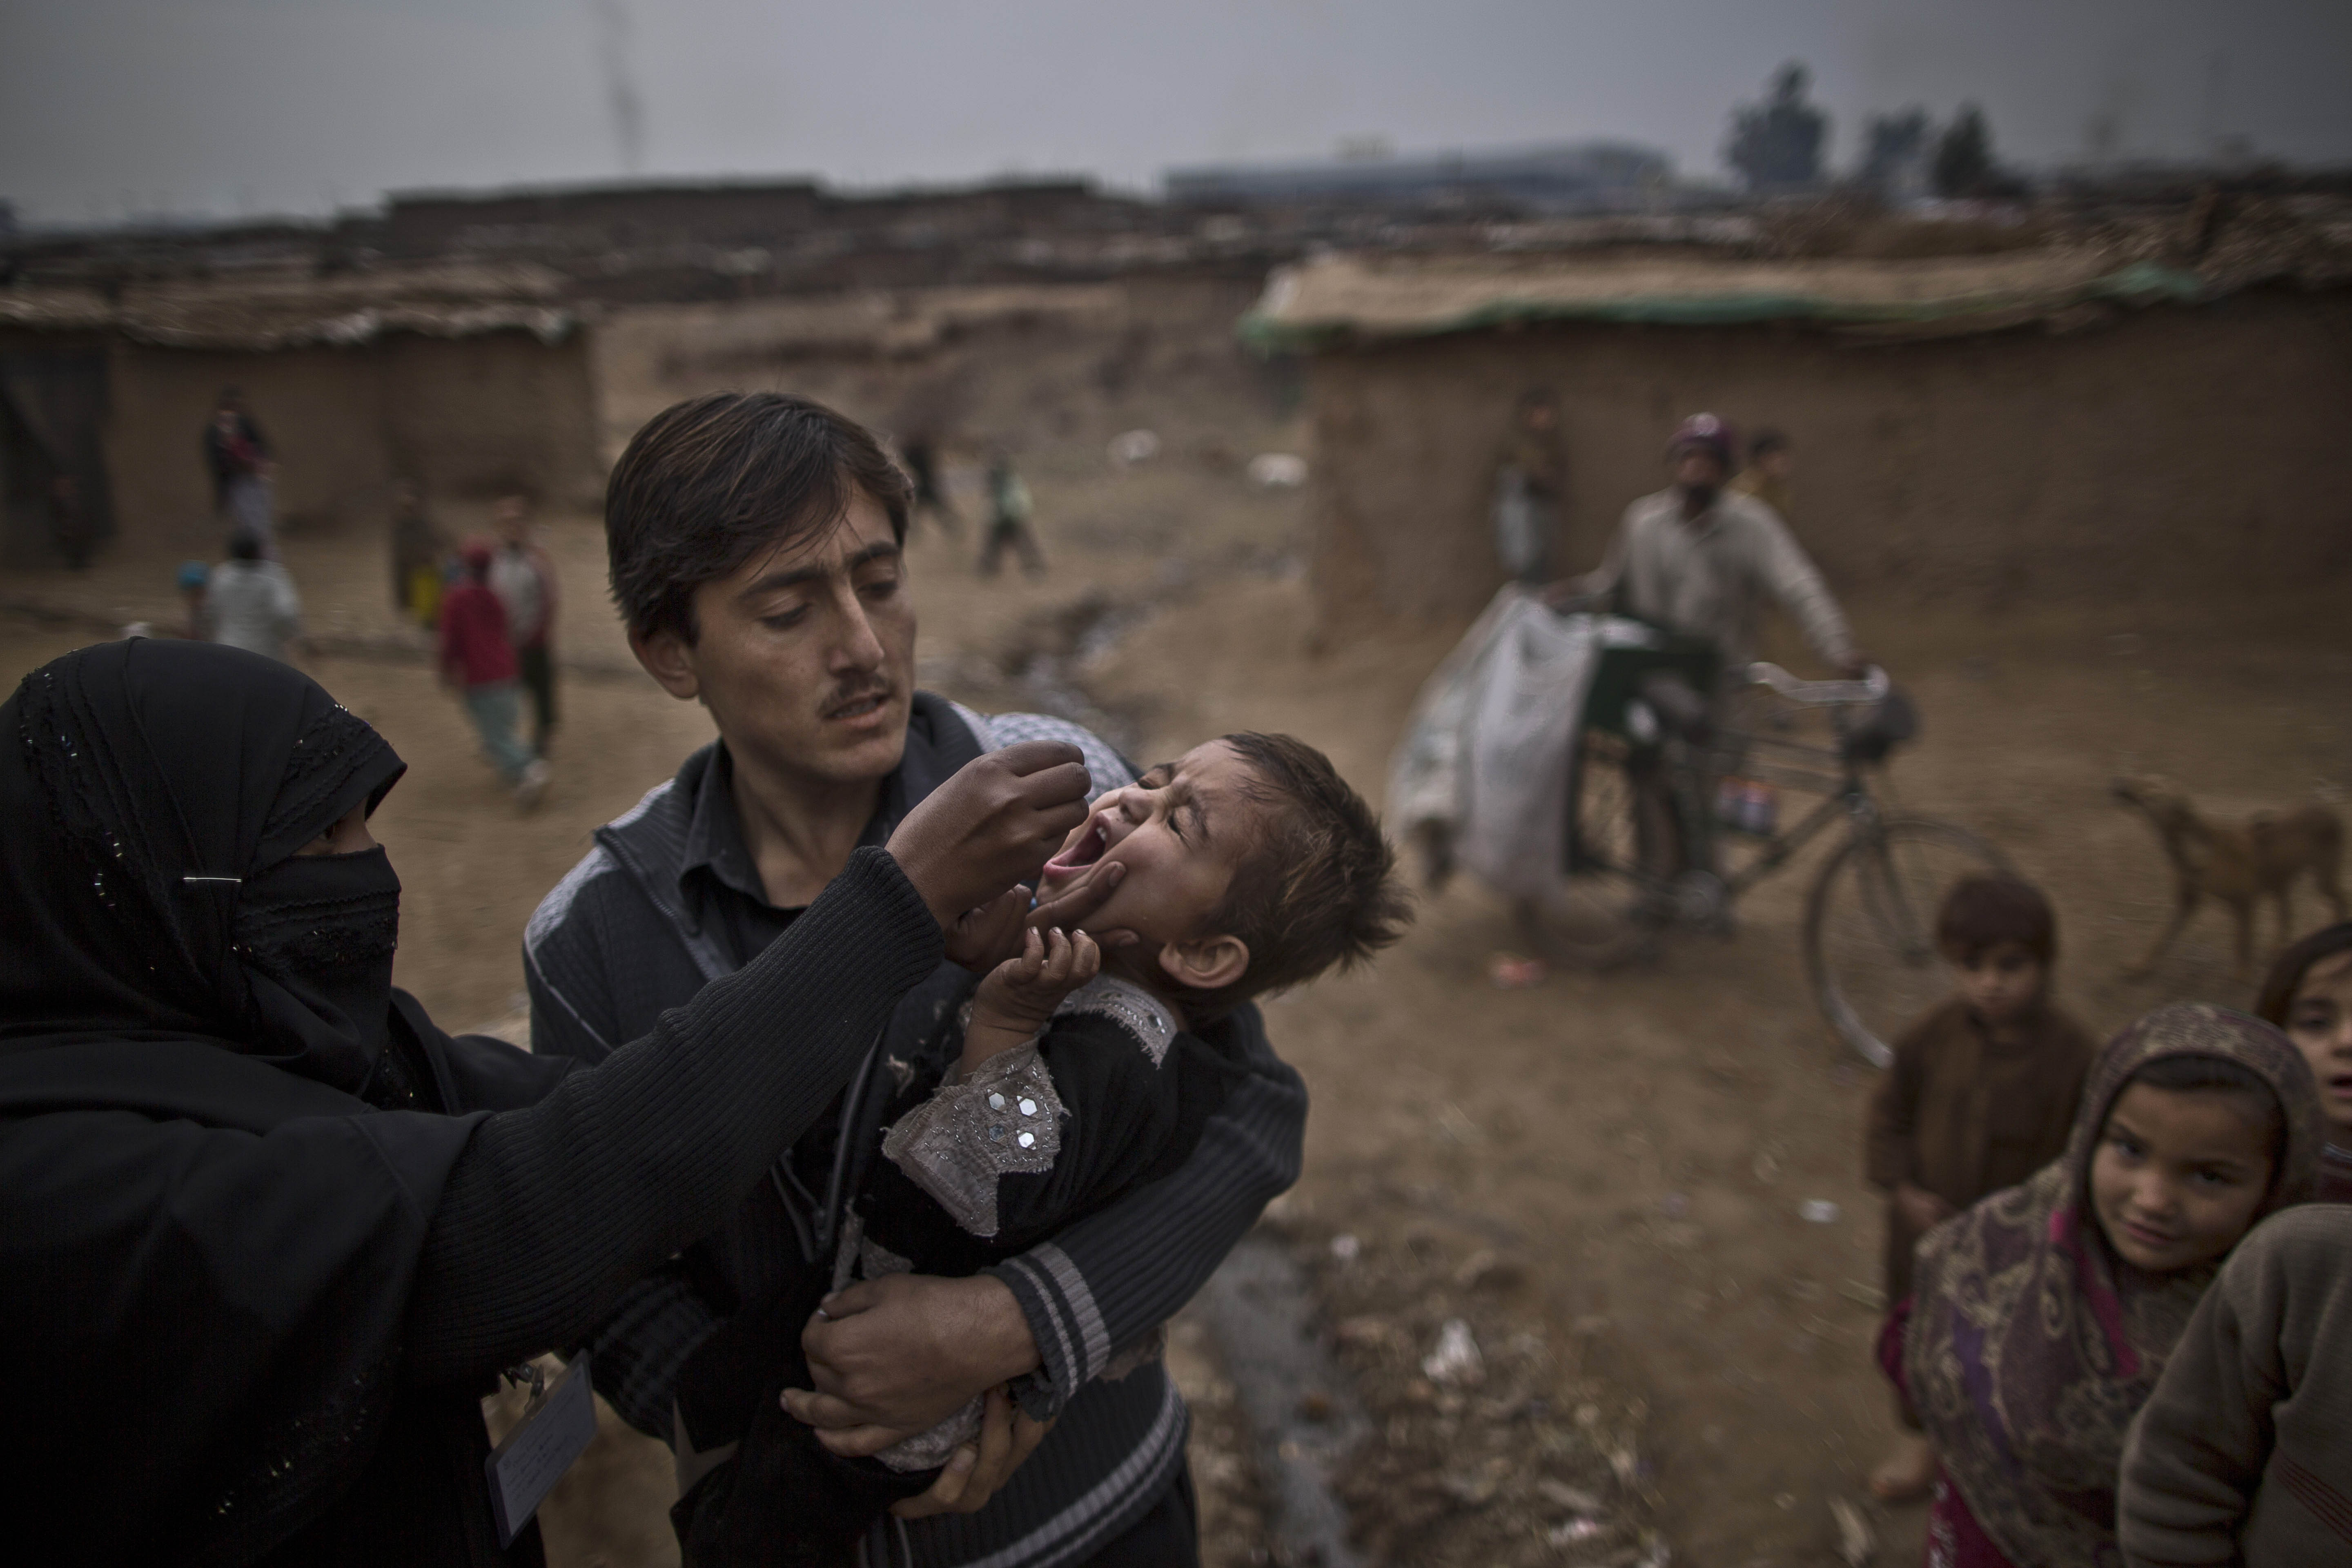 A Pakistani health worker, left, gives a polio vaccine to a child in a poor neighborhood that hosts people displaced from tribal areas and Afghan refugees, on the outskirts of Islamabad, Pakistan, Jan. 22, 2014.